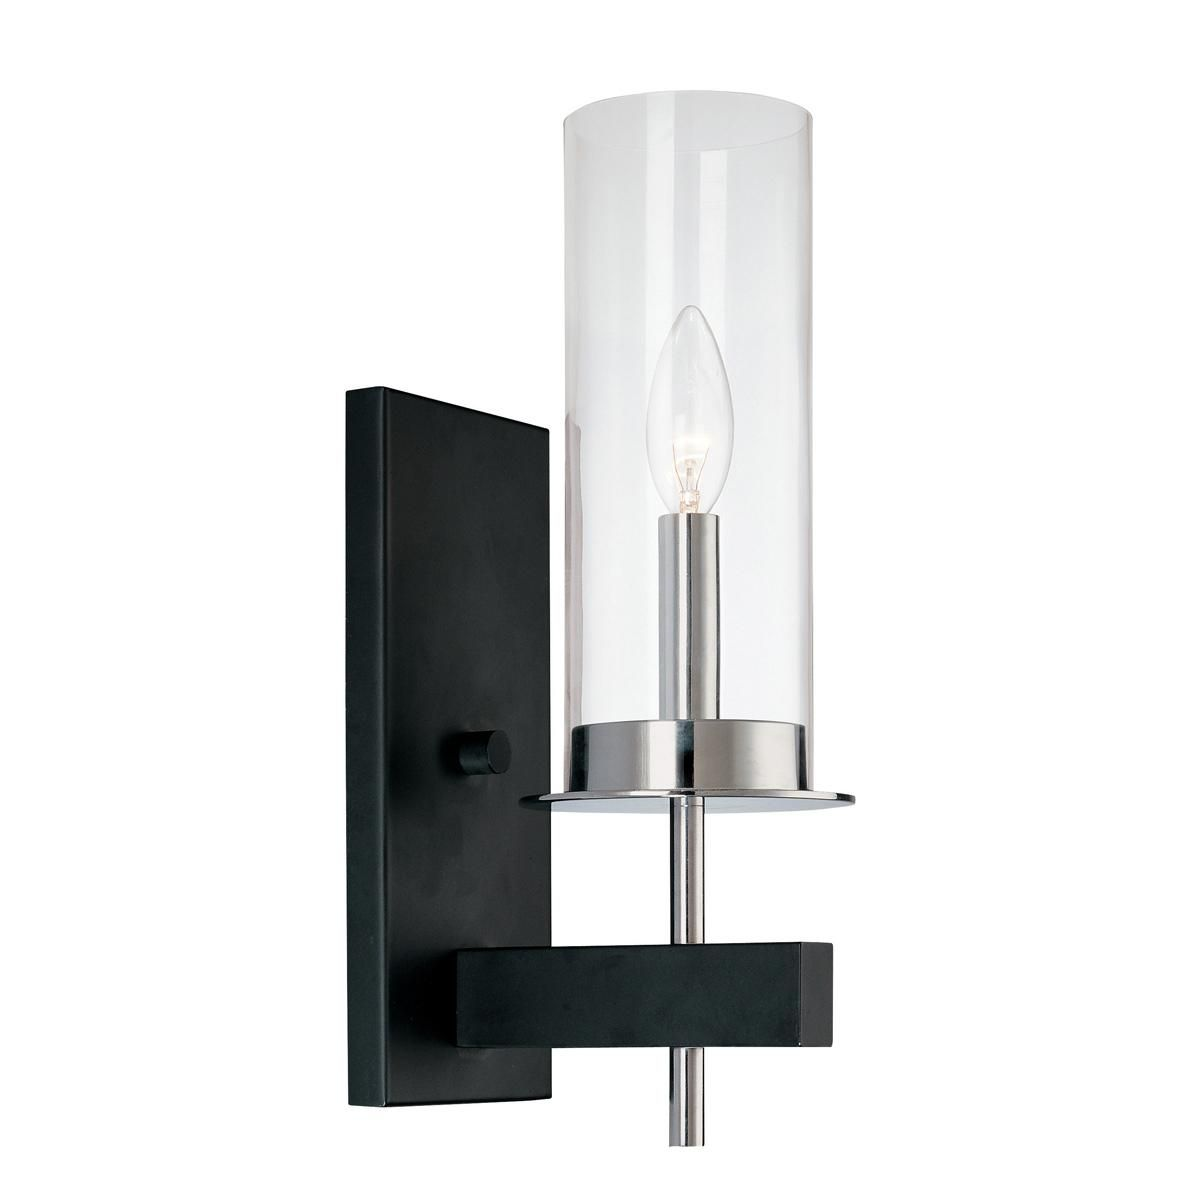 Modern Radius And Clear Glass Hurricane Sconce 1 Light Black Wall Sconce Wall Sconces Wall Lights